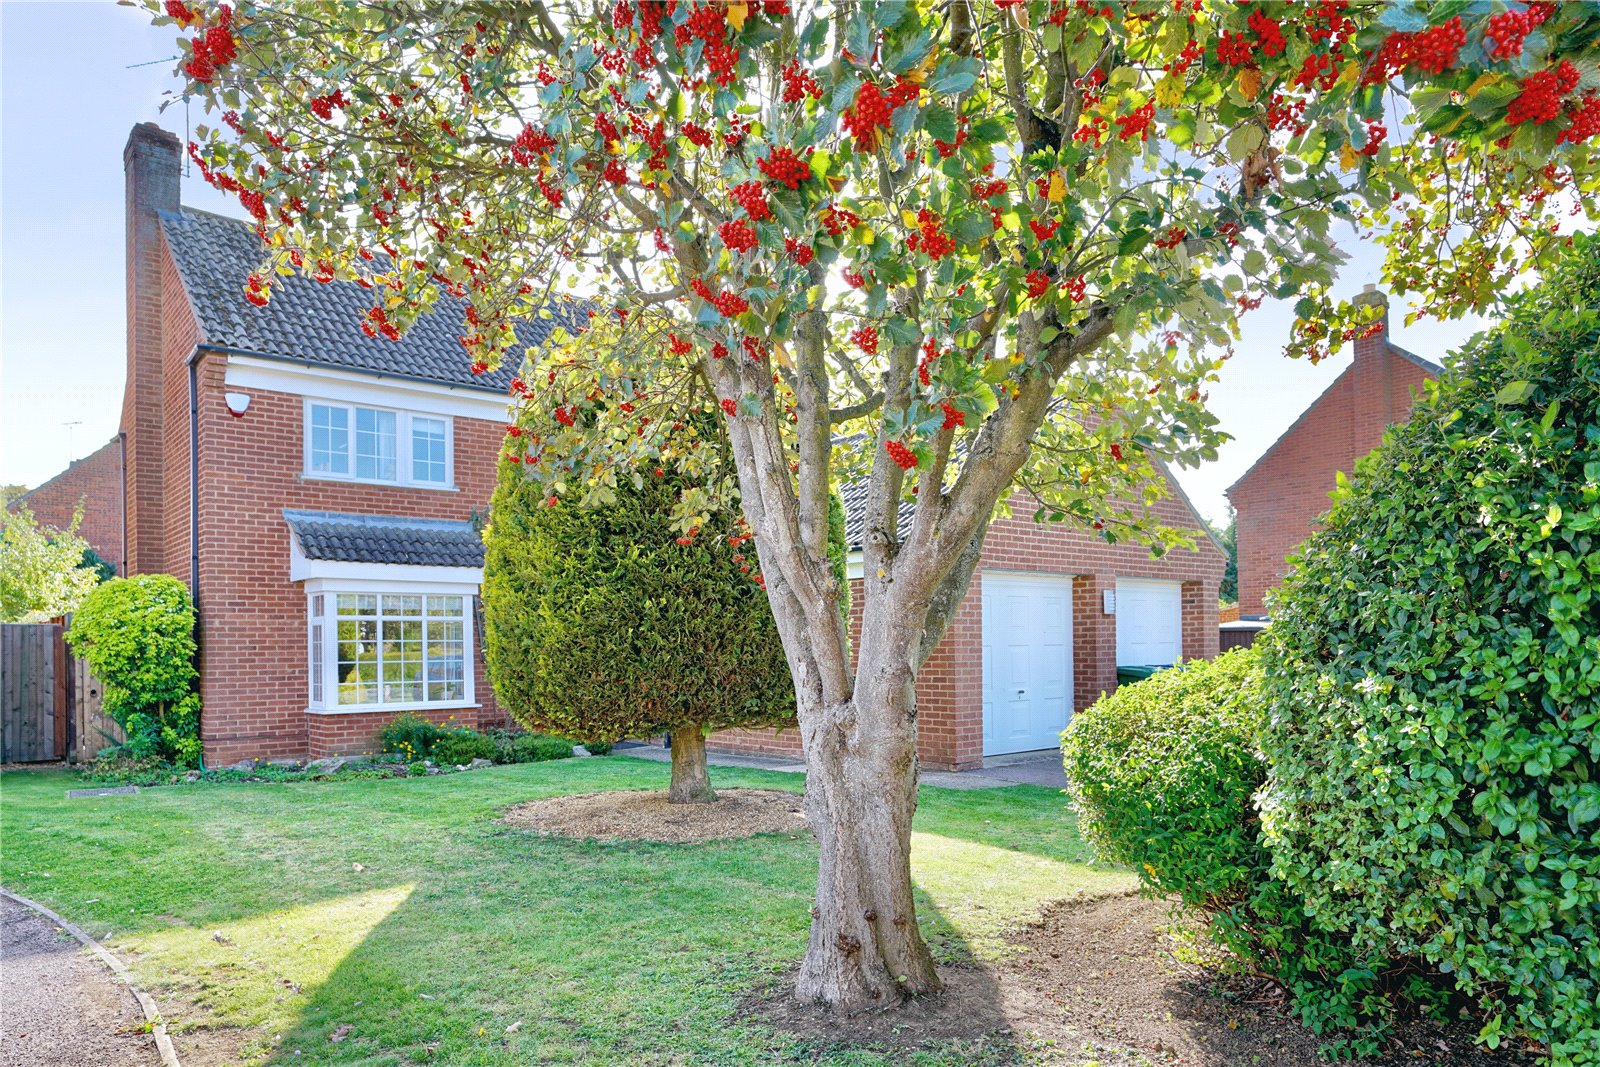 4 bed house for sale in Eaton Ford, Bilberry Close, PE19 7GU, PE19